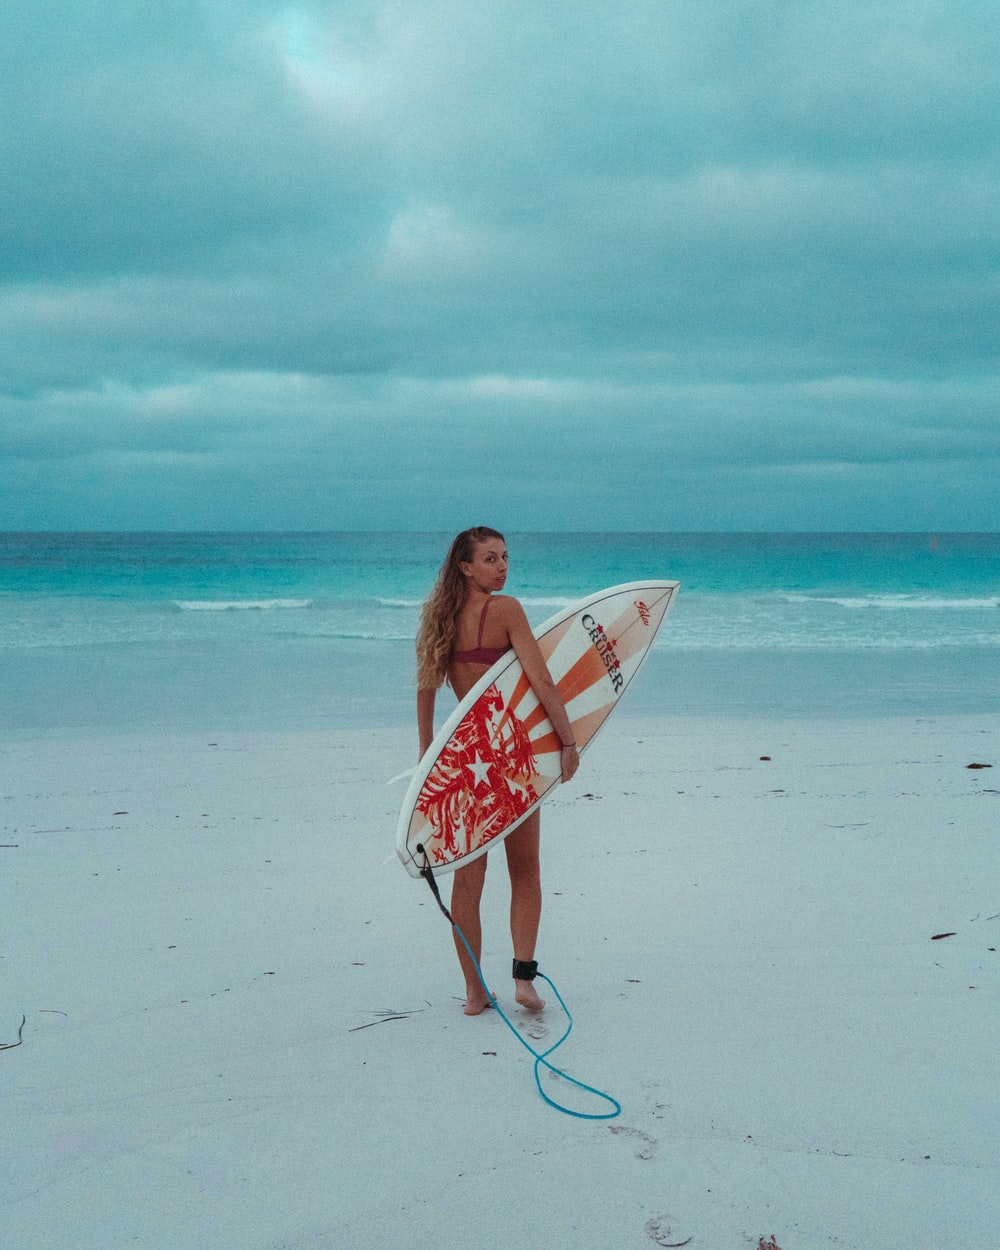 woman in white and red floral dress holding white and red surfboard on beach during daytime